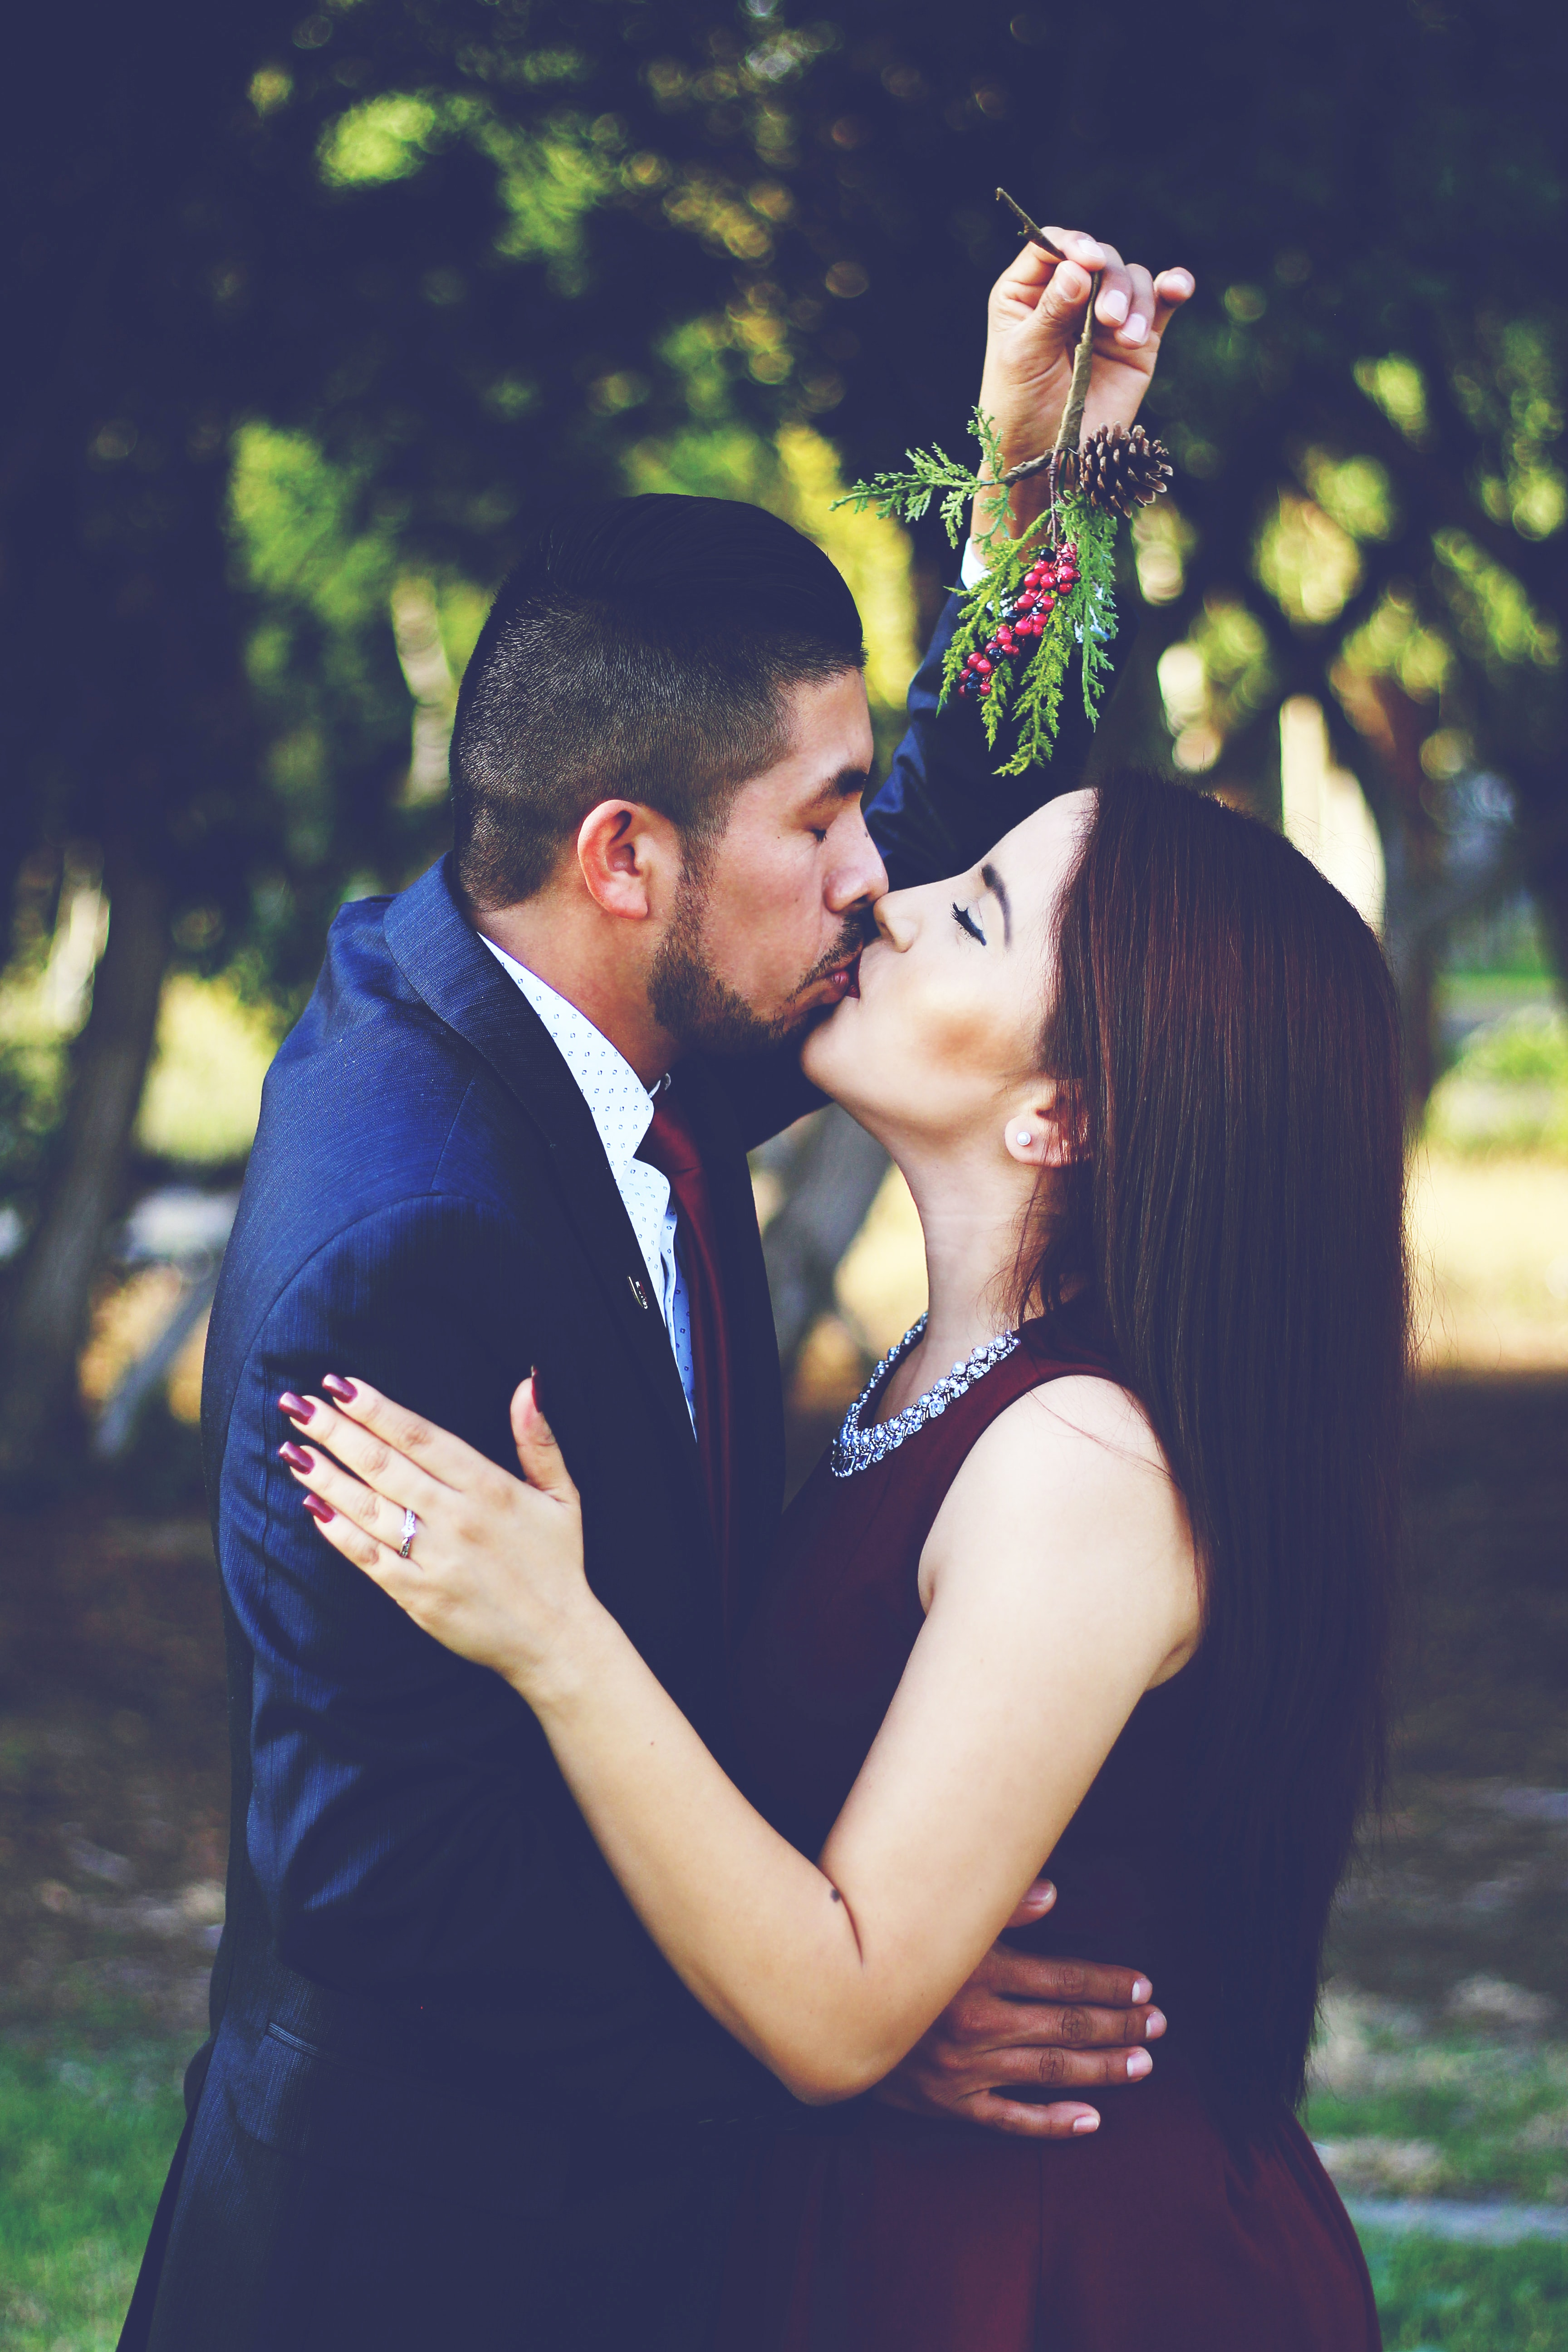 A man and woman in formalwear kiss outdoors while he holds mistletoe over their heads